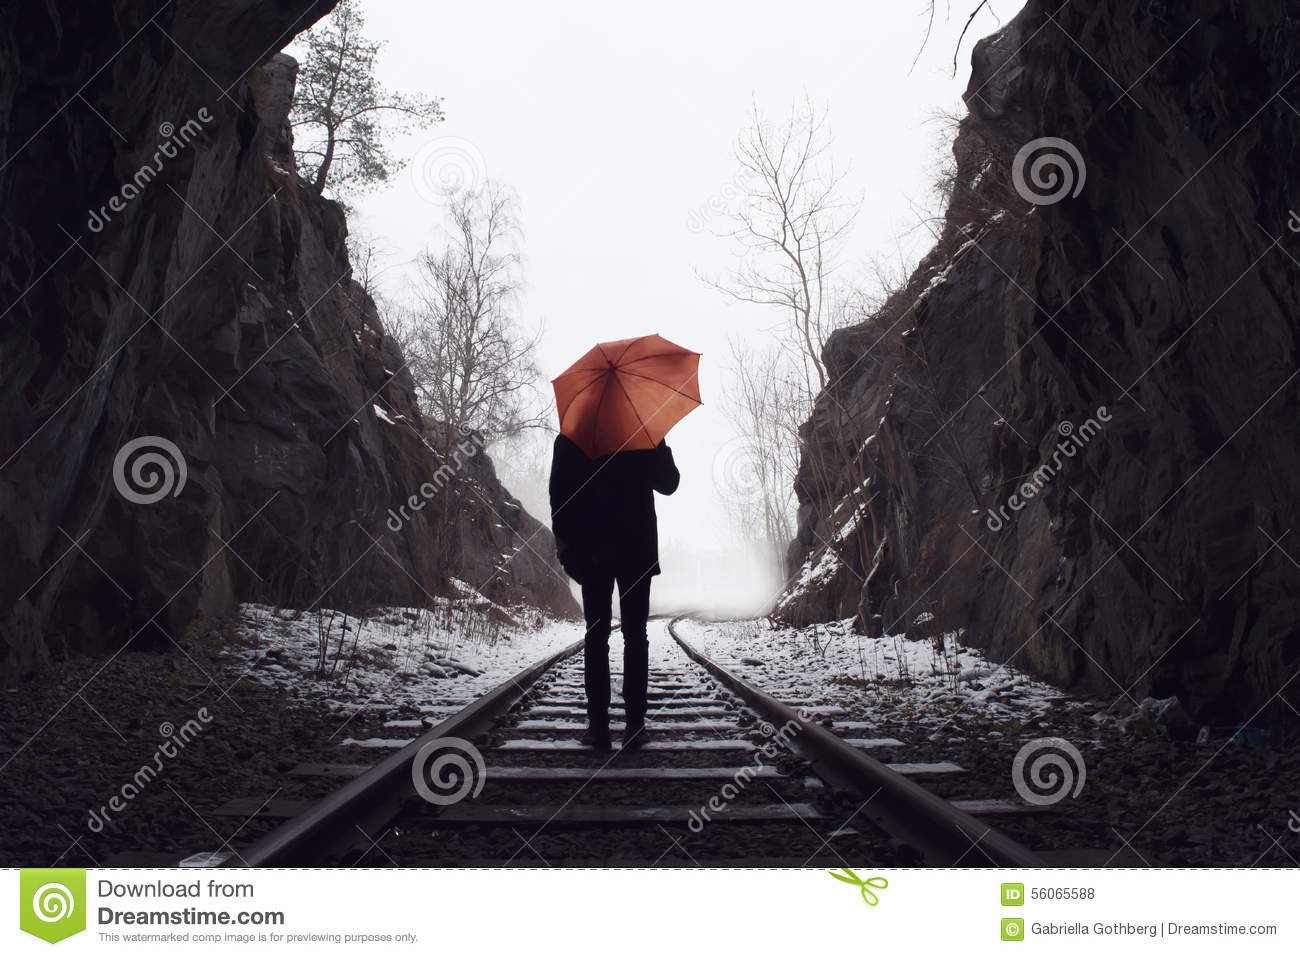 Man with umbrella standing on old railroad tracks vanishing